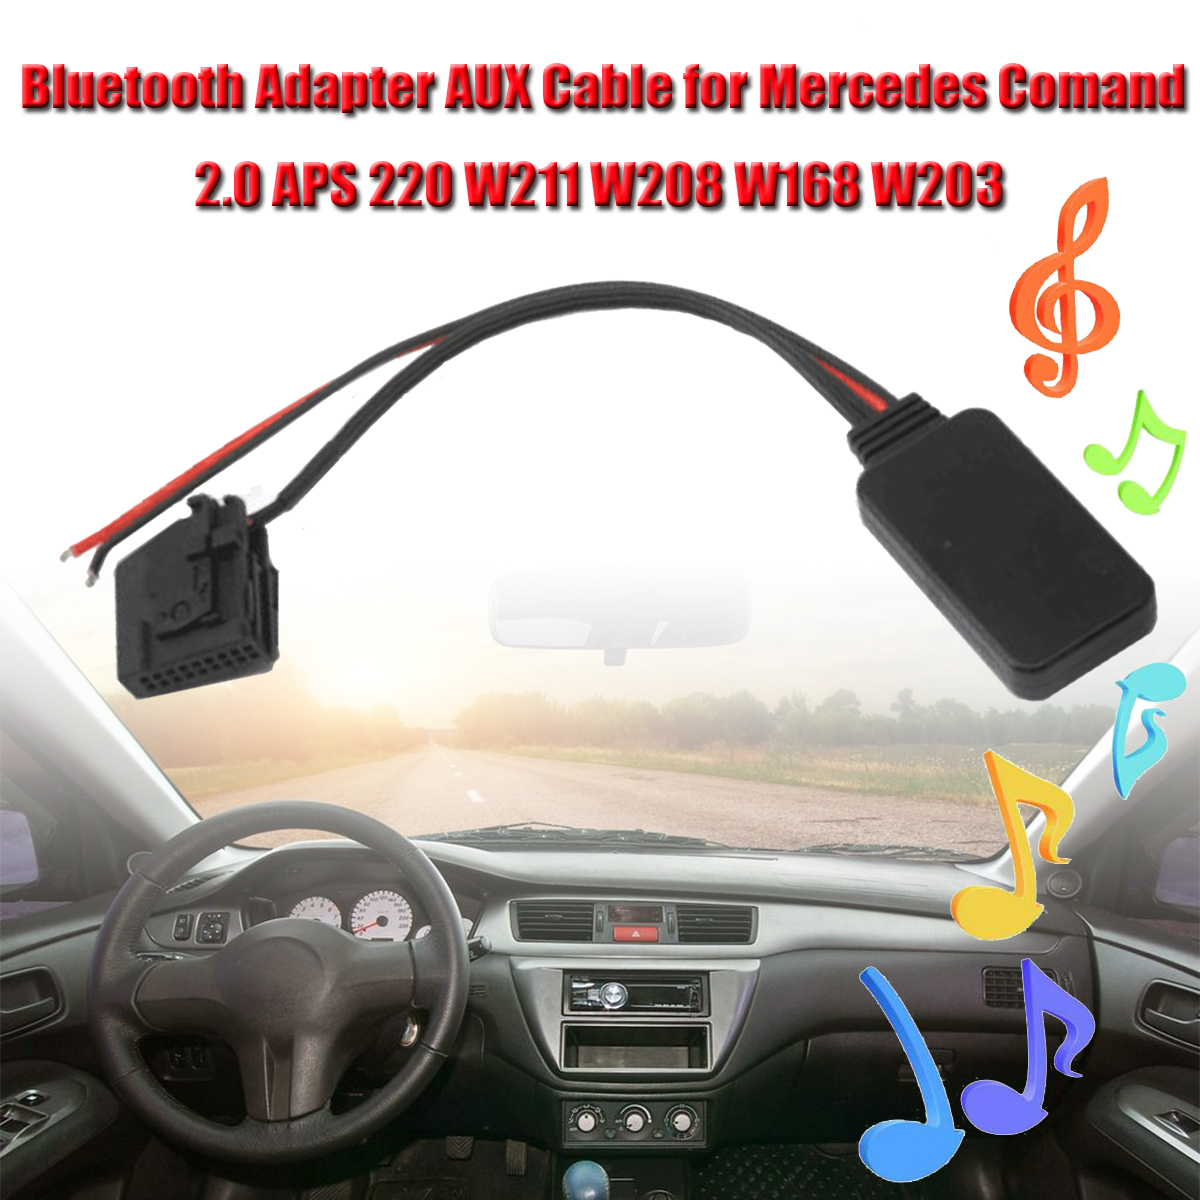 Bluetooth Car Adapter AUX Cable for Mercedes Comand 2.0 APS 220 W211 W208  W168 W203 Audio Playback Audio Car AUX Cable-in Cables, Adapters & Sockets  from ...